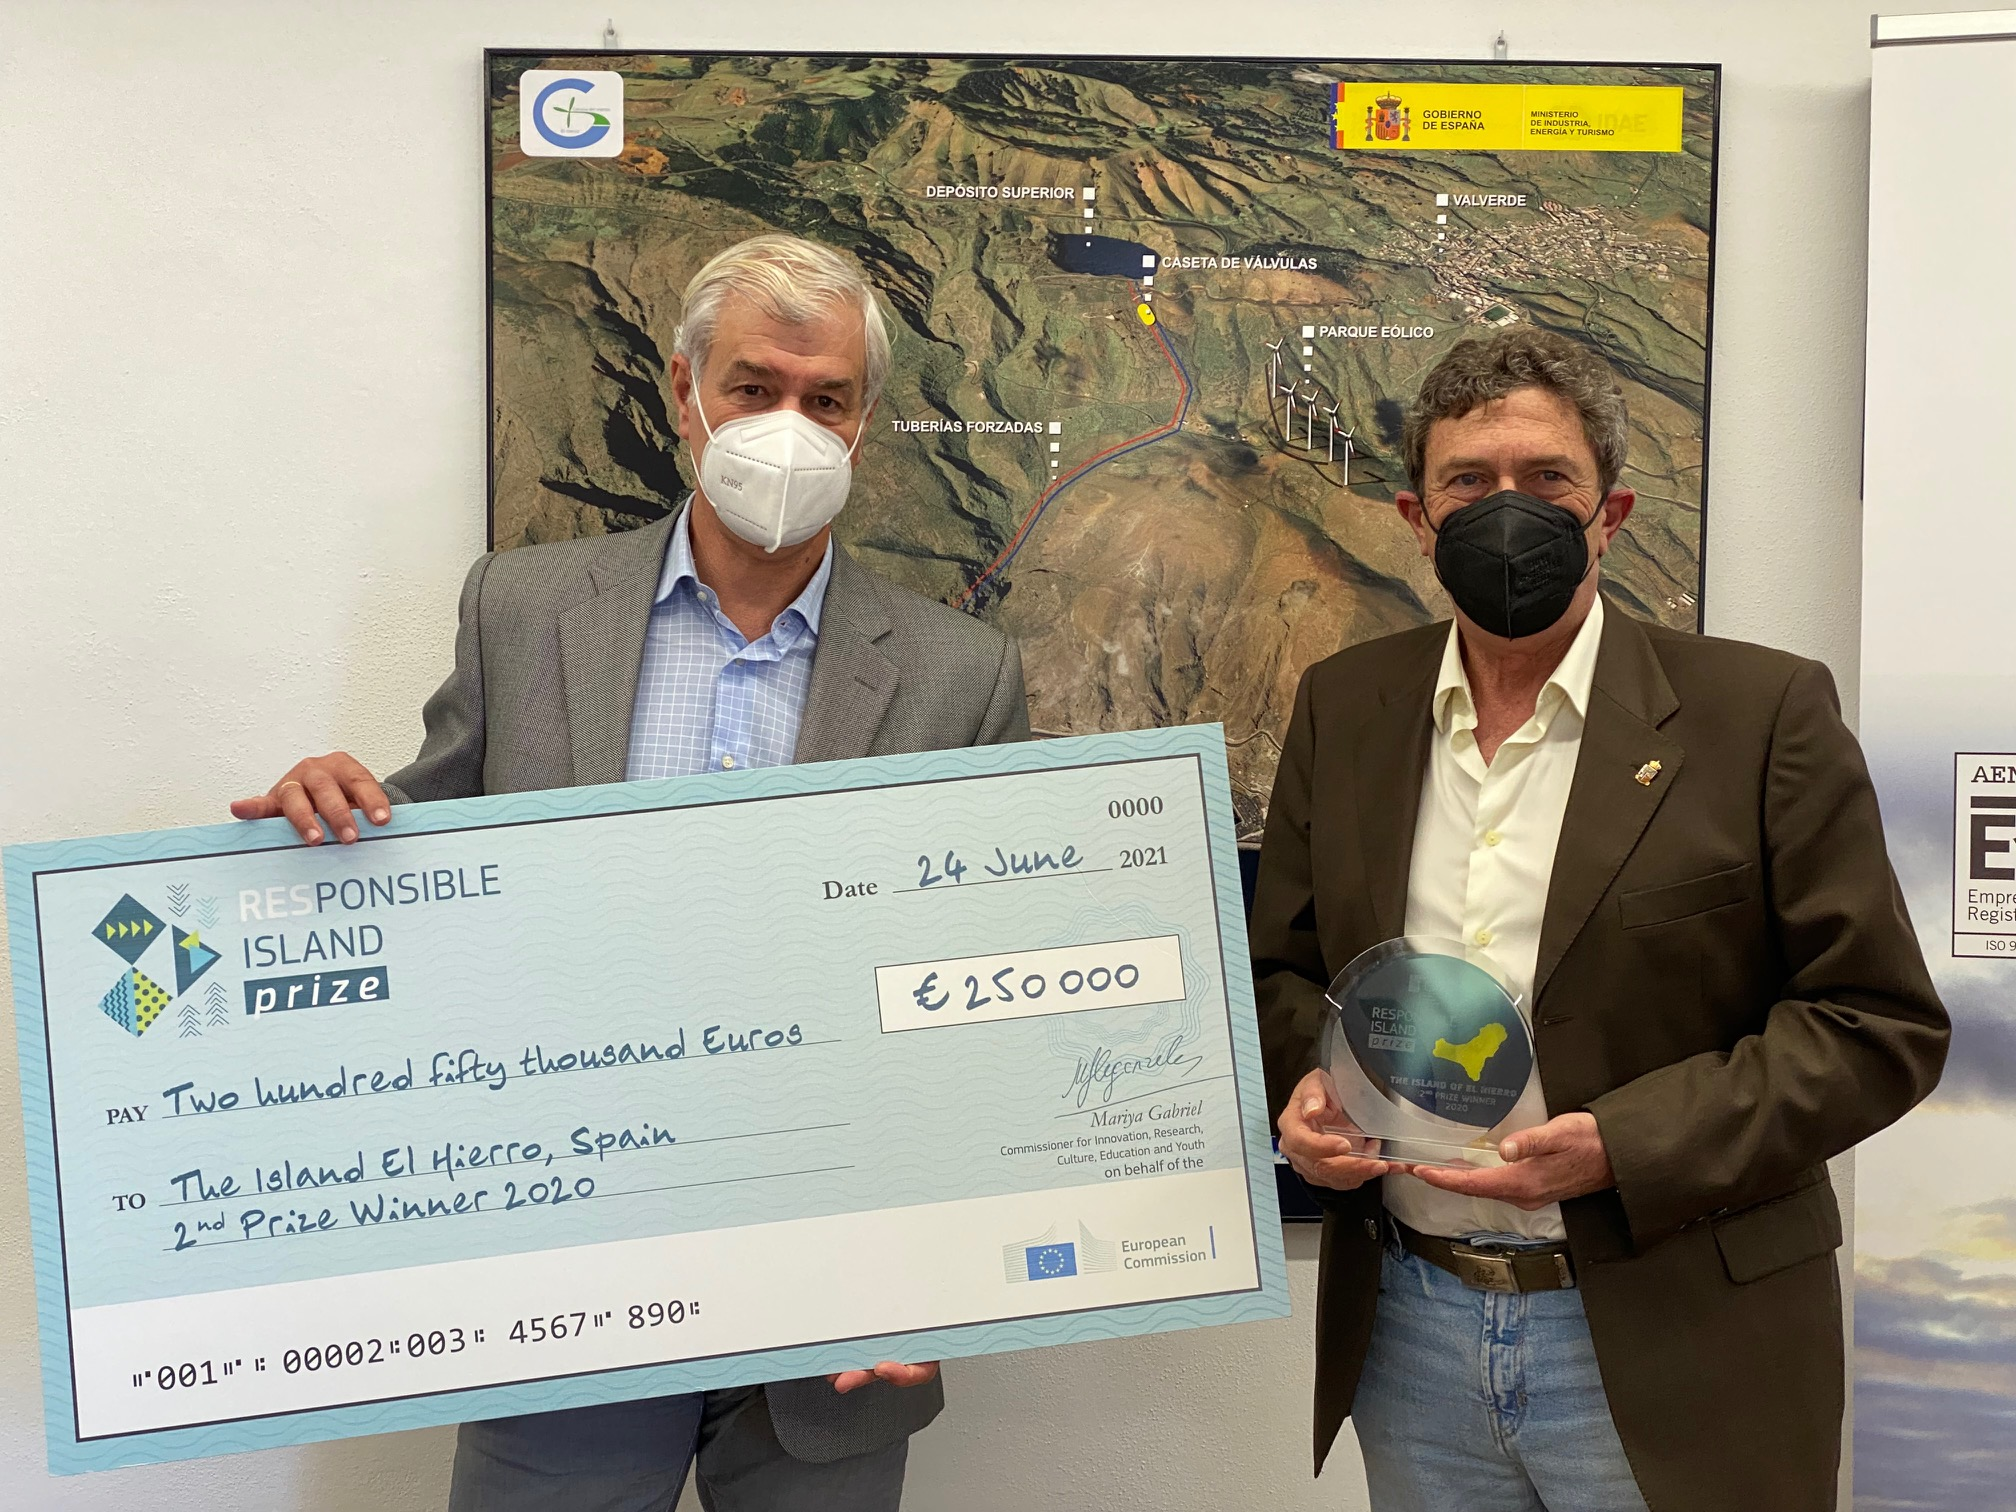 The island of El Hierro is awarded the RESponsible Island Prize